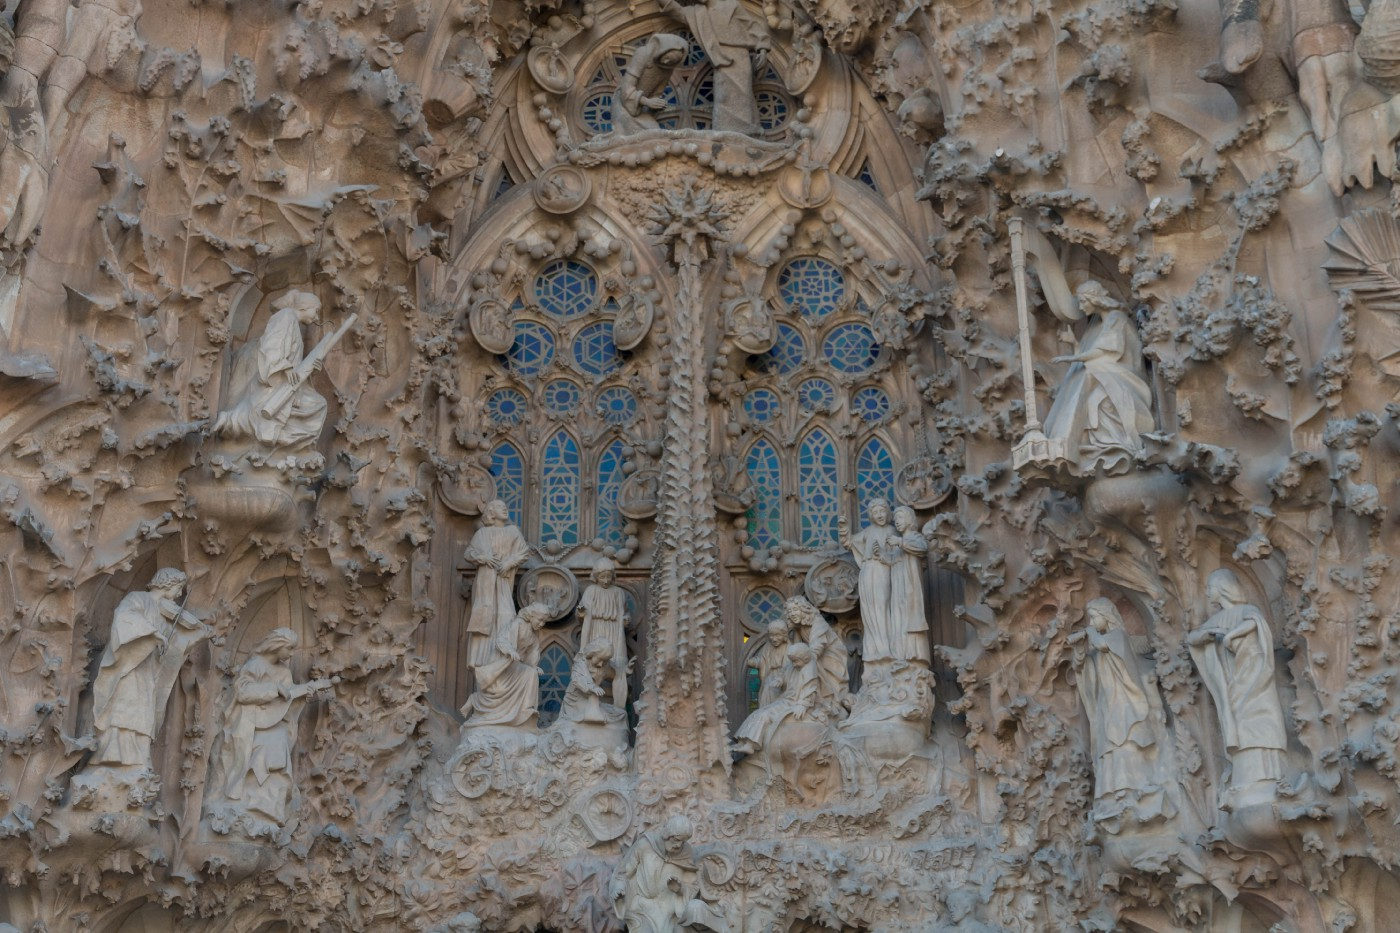 Sculptures of people surround blue tinted windows on the outside of the Sagrada Família.